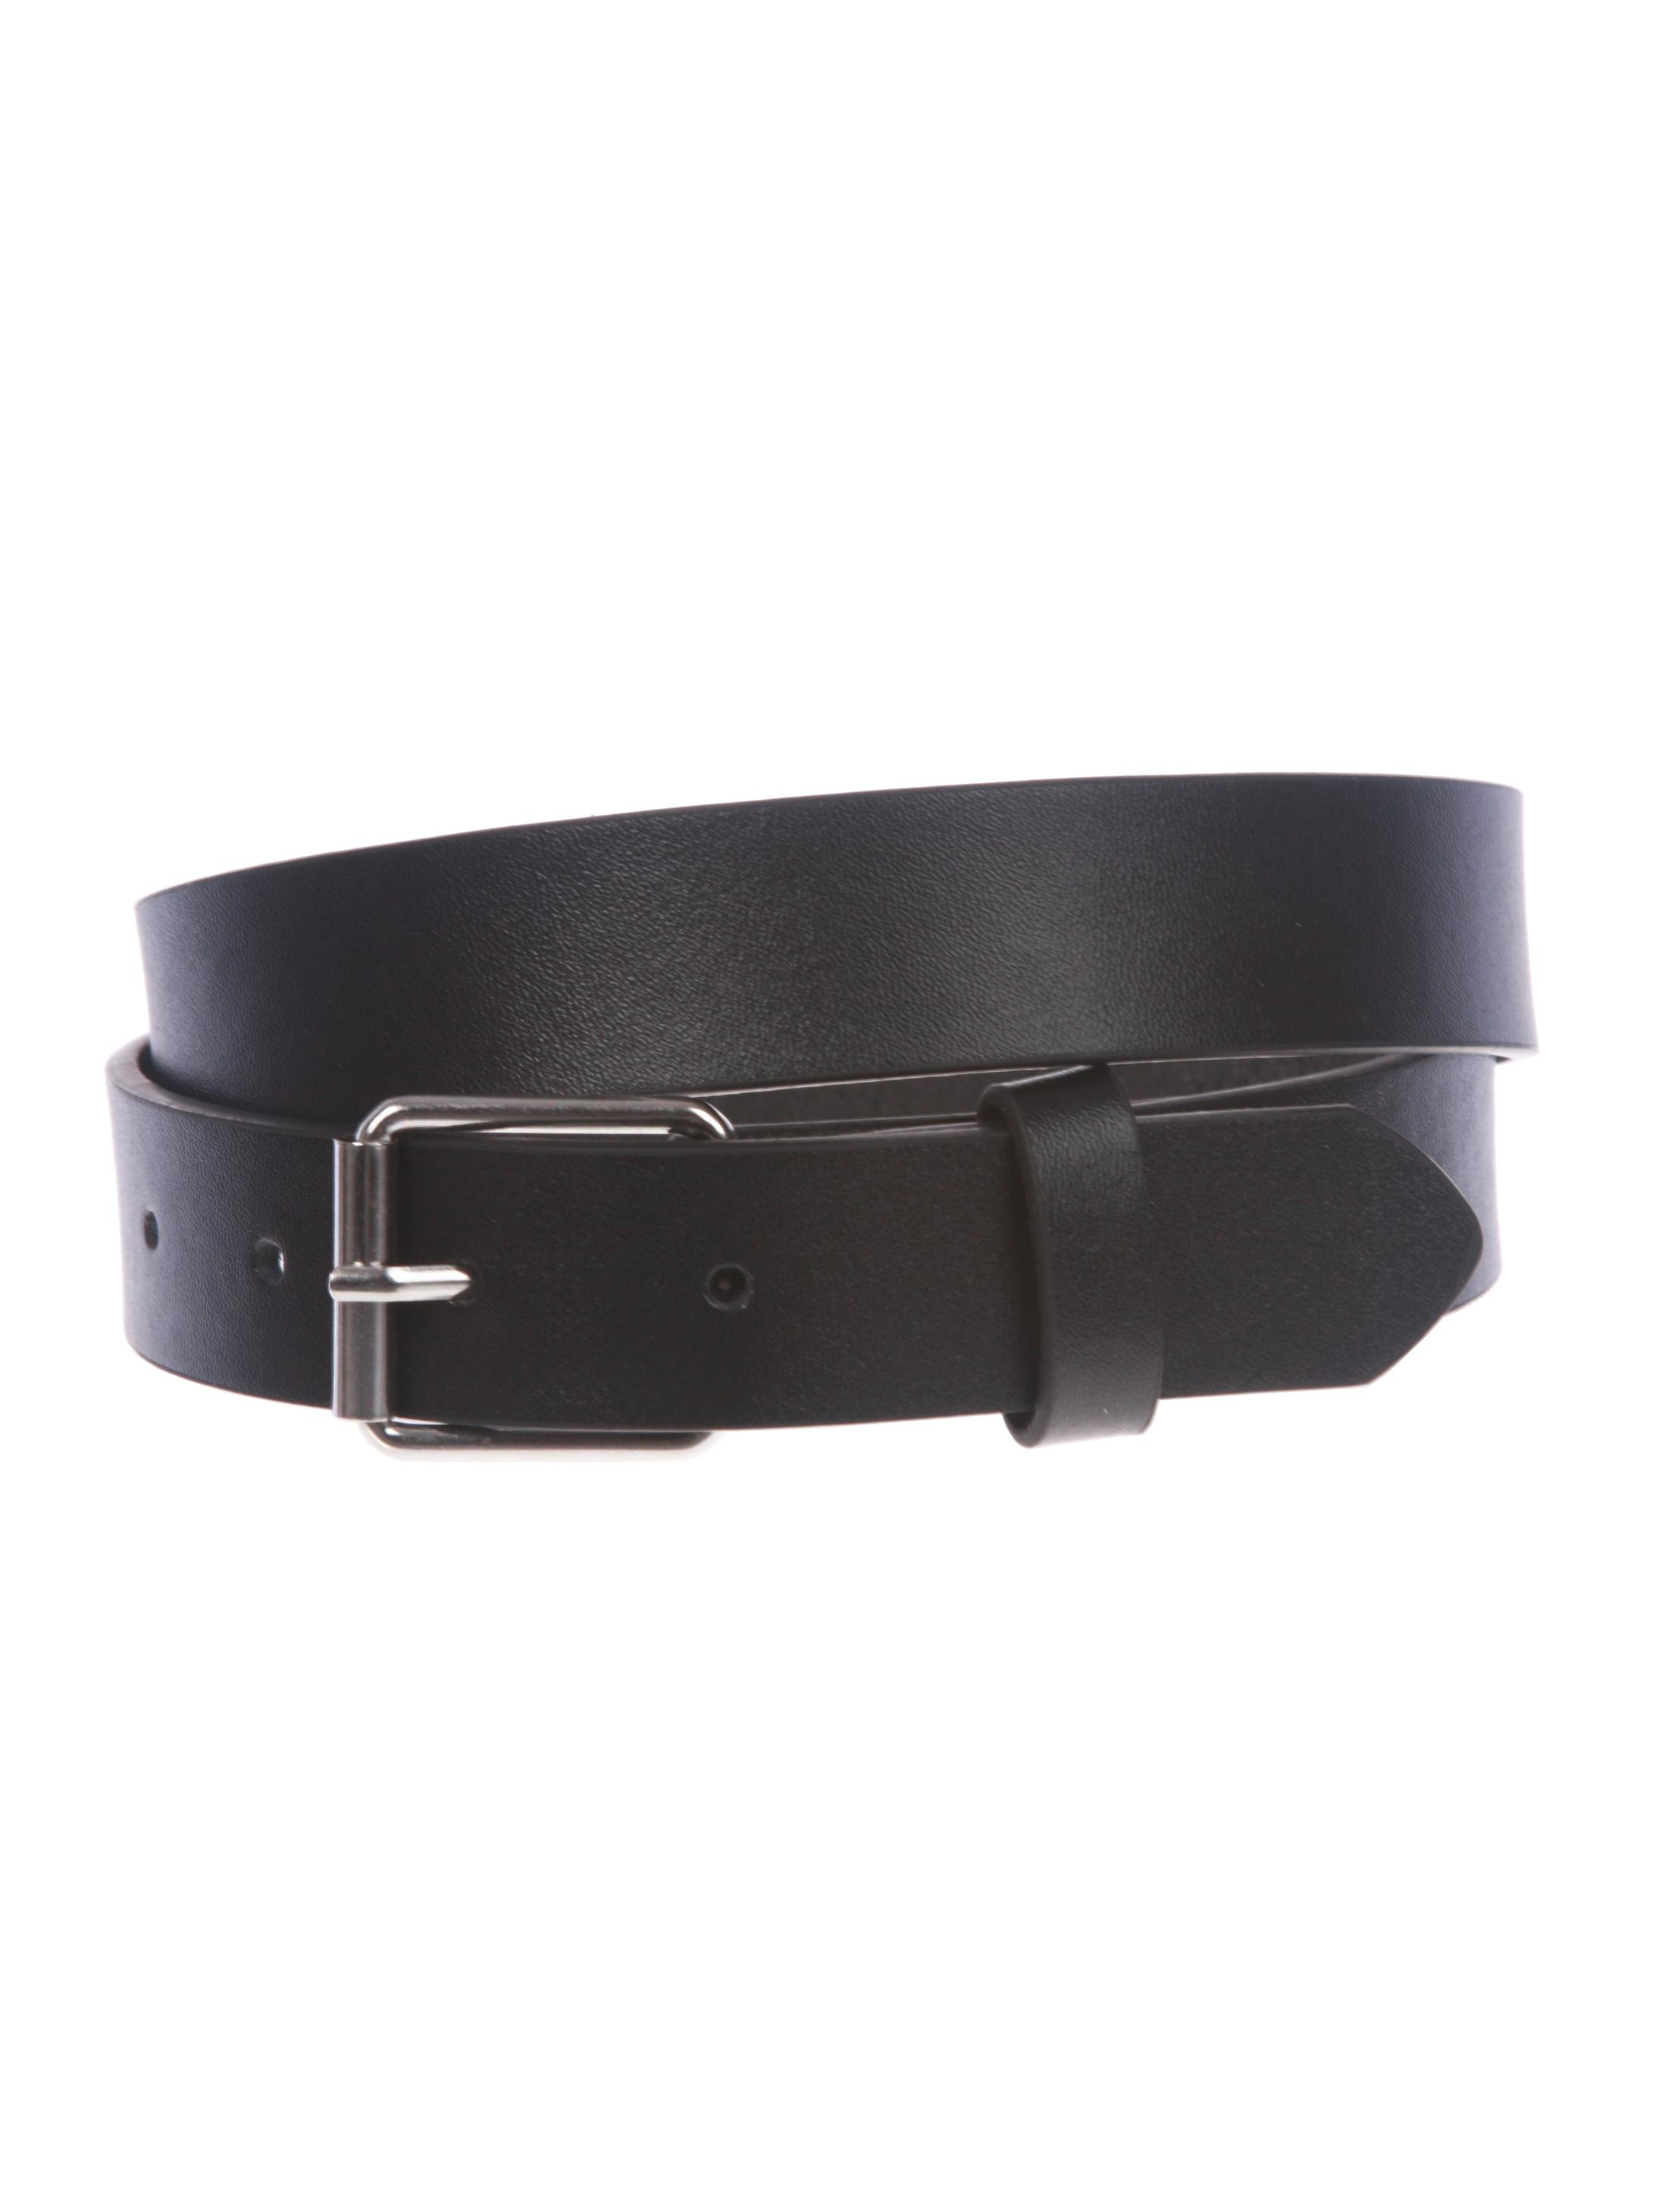 Kids or Extra Small Size Snap On Plain Leather Belt Black 23 Inch